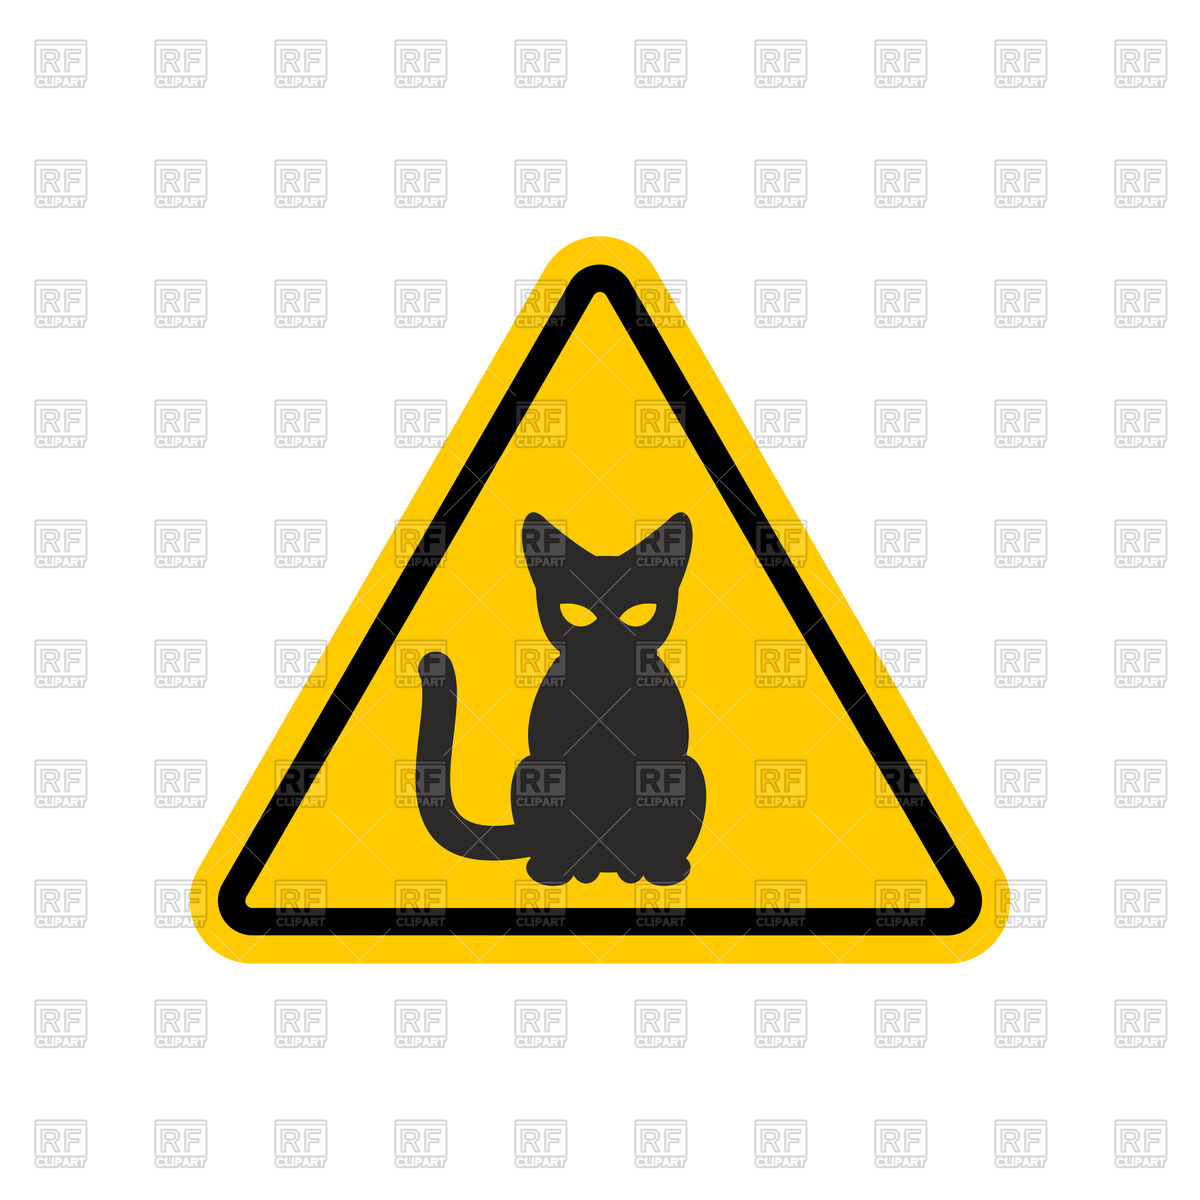 Yellow triangular attention sign with black cat, danger road sign Stock  Vector Image.